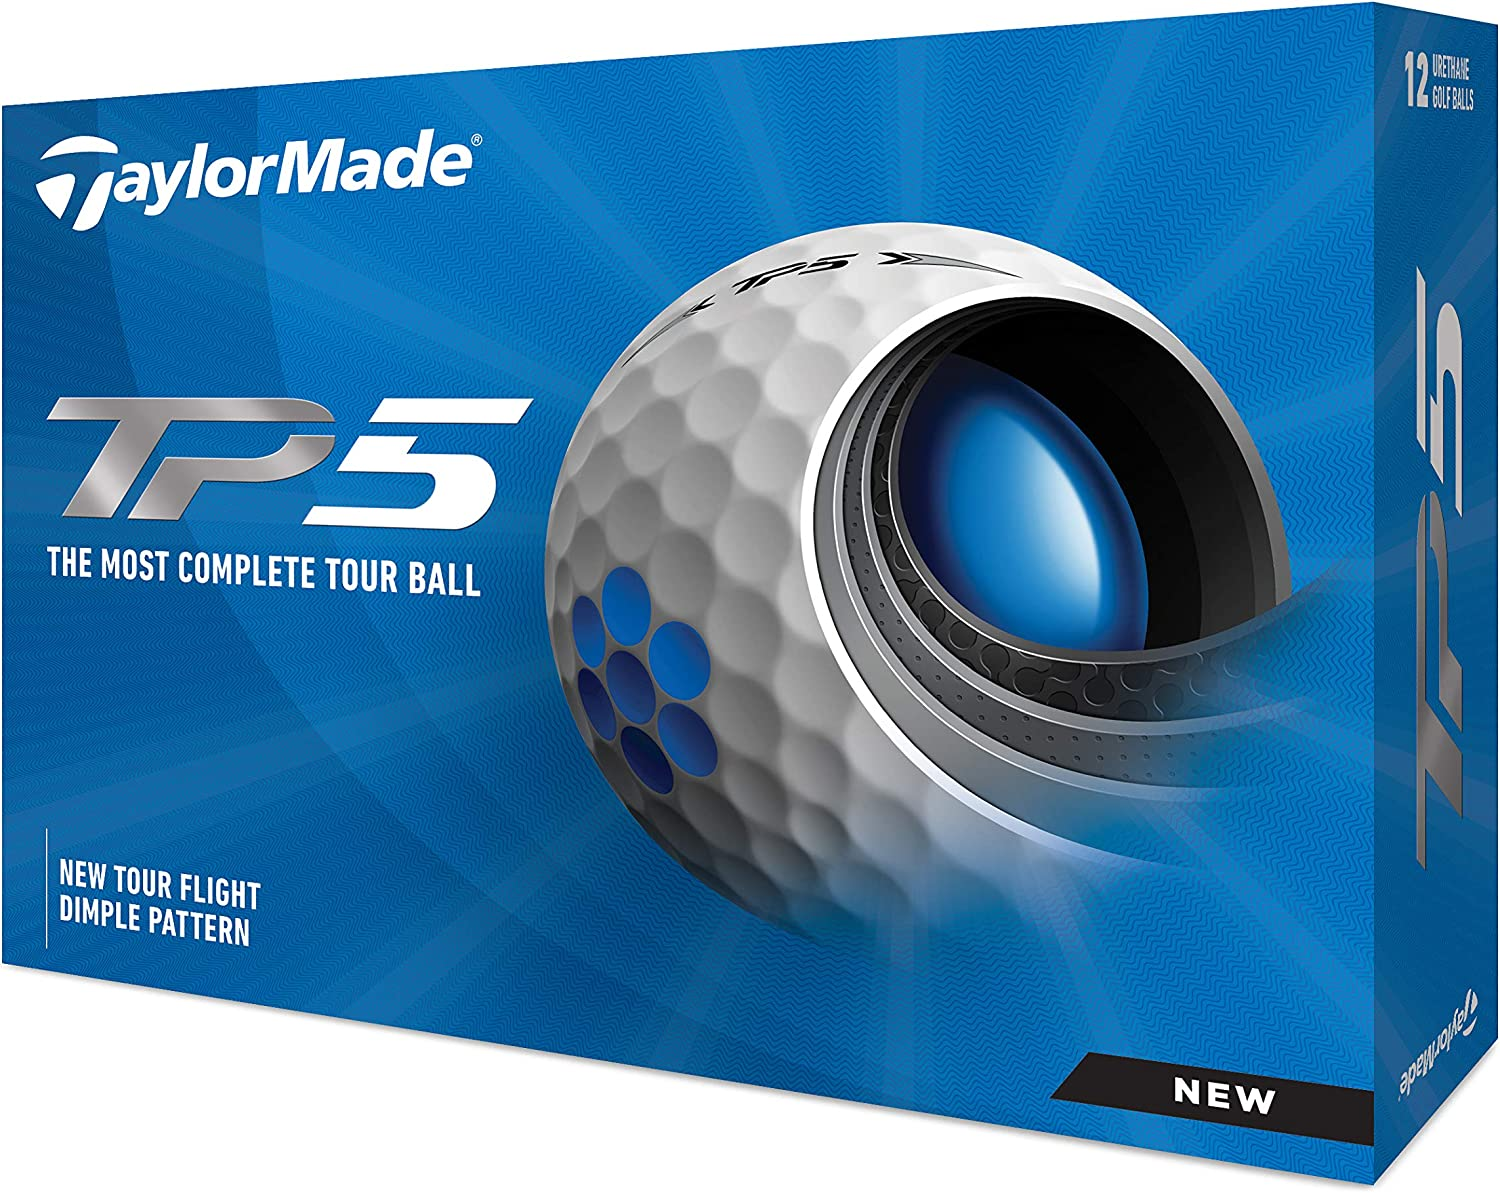 TaylorMade Unisex's TP5 Golf Size White Cheap mail order shopping Max 57% OFF One Balls